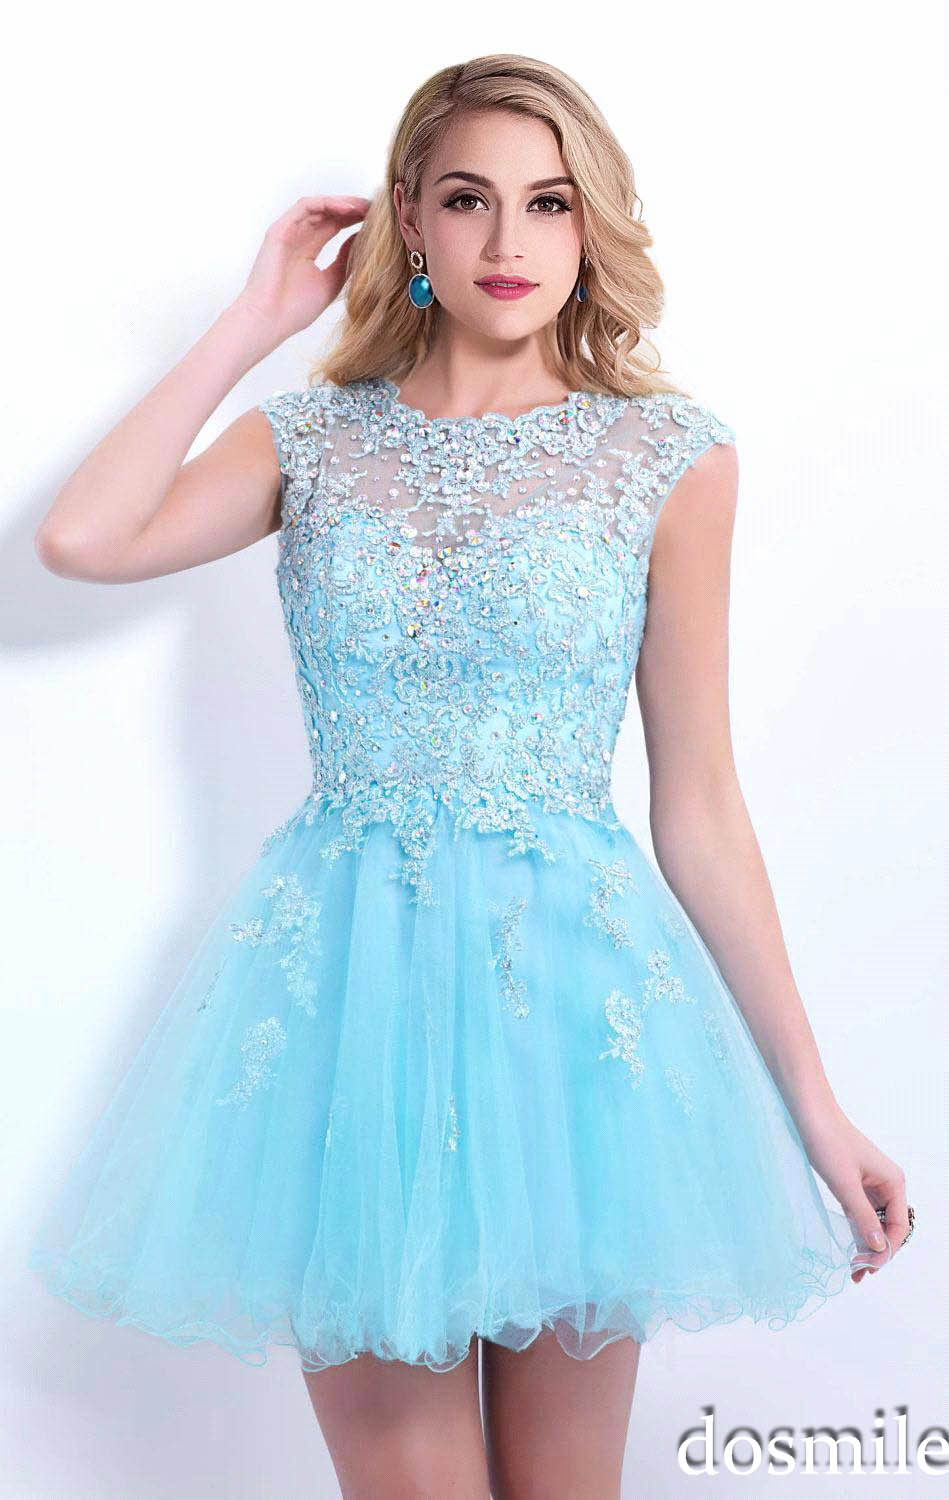 Compare Prices on Blue Semi Formal Dress- Online Shopping/Buy Low ...